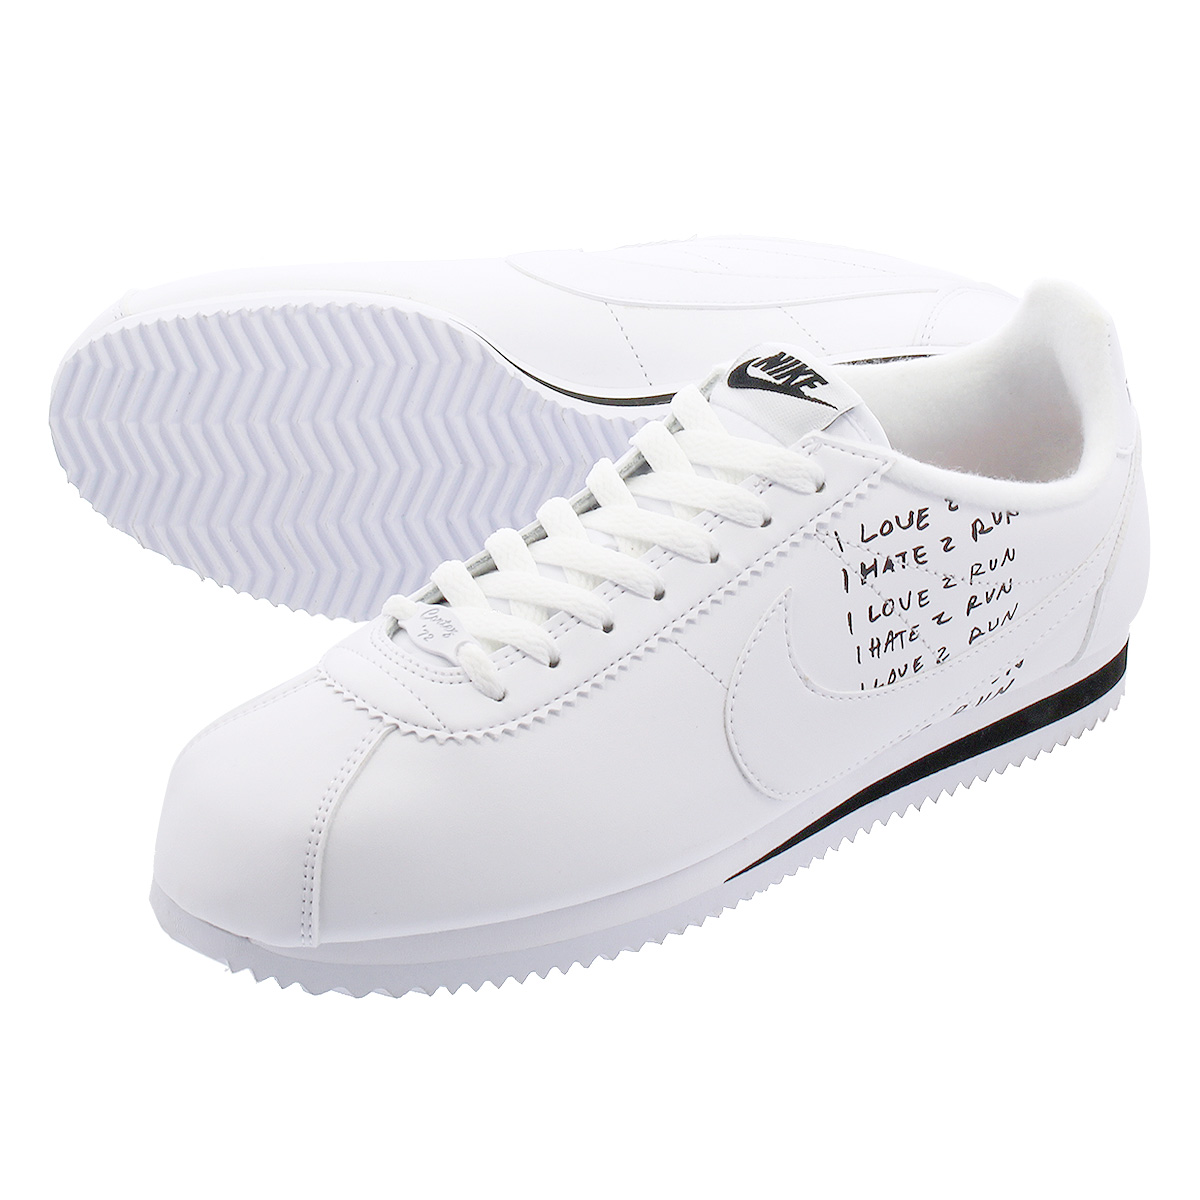 cheap prices los angeles casual shoes NIKE CLASSIC CORTEZ ナイキクラシックコルテッツ WHITE/BLACK/PINK FOAM bv8165-100